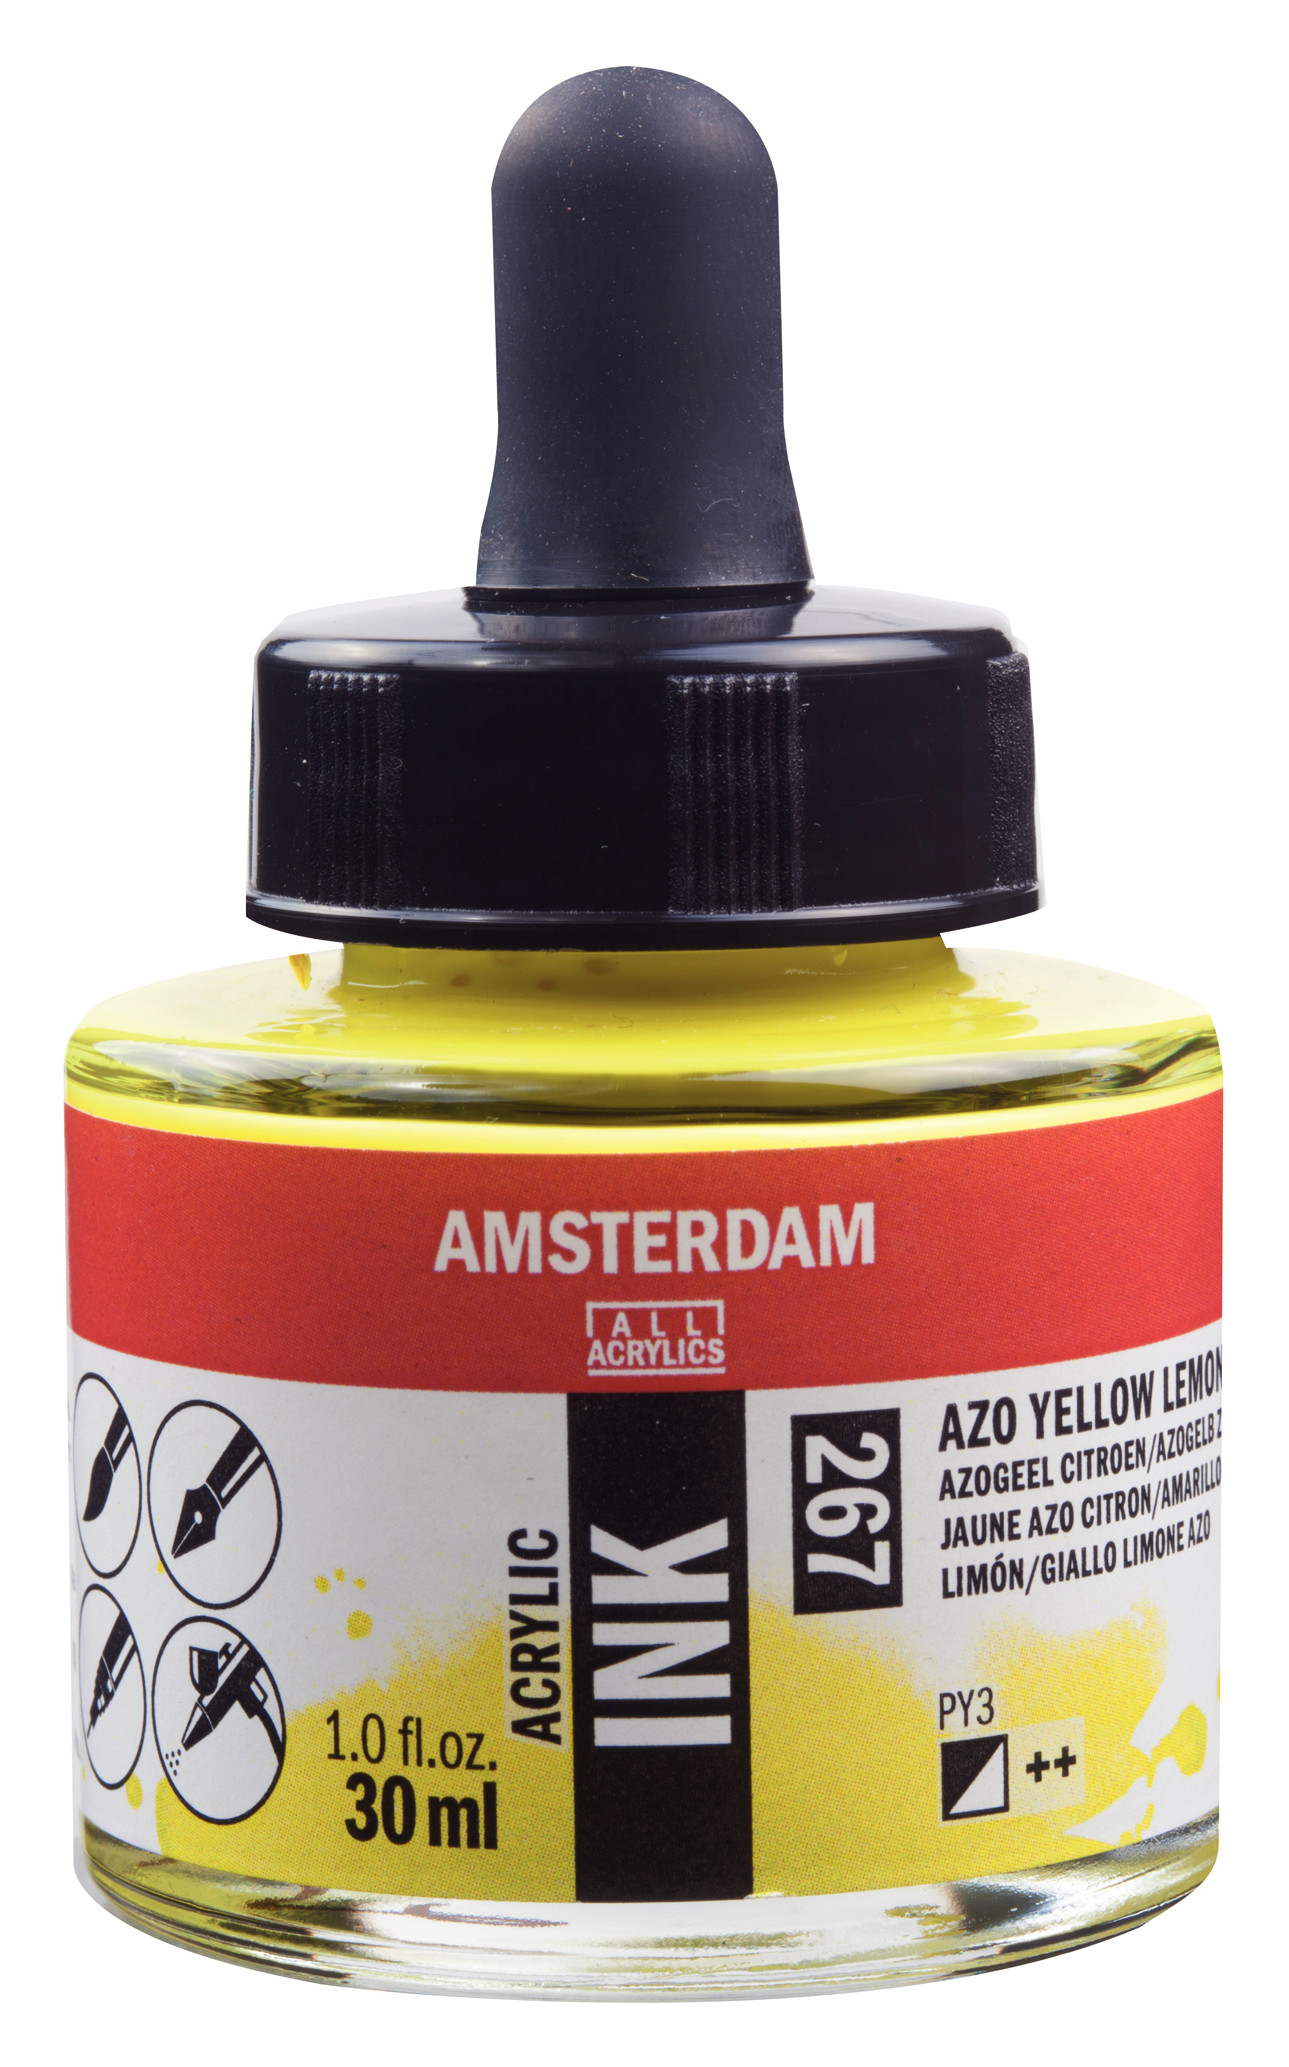 Amsterdam Acrylic Ink Bottle 30 ml Azo Yellow Lemon 267